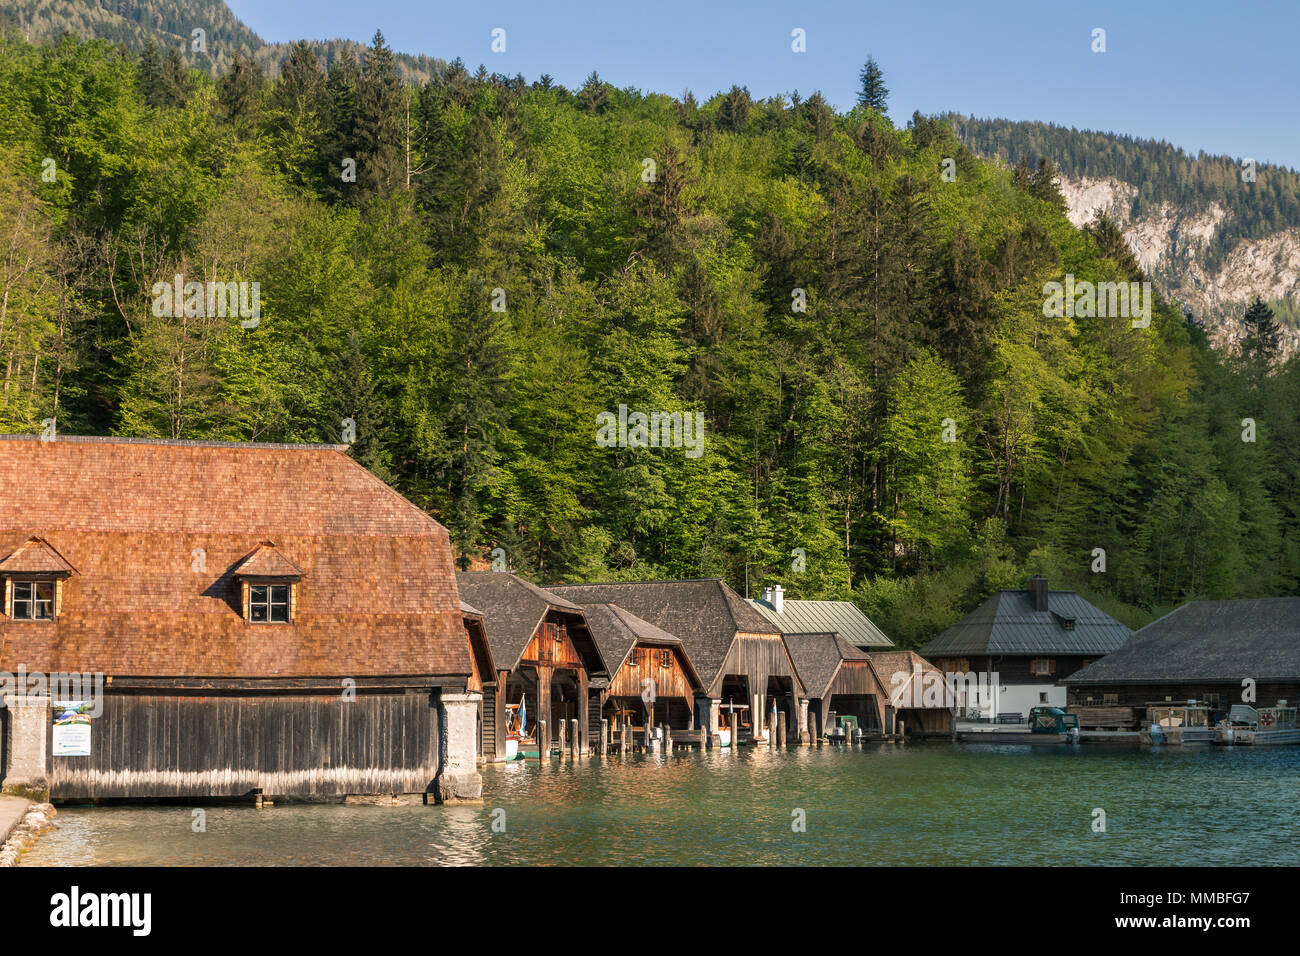 House by the lake - Stock Image